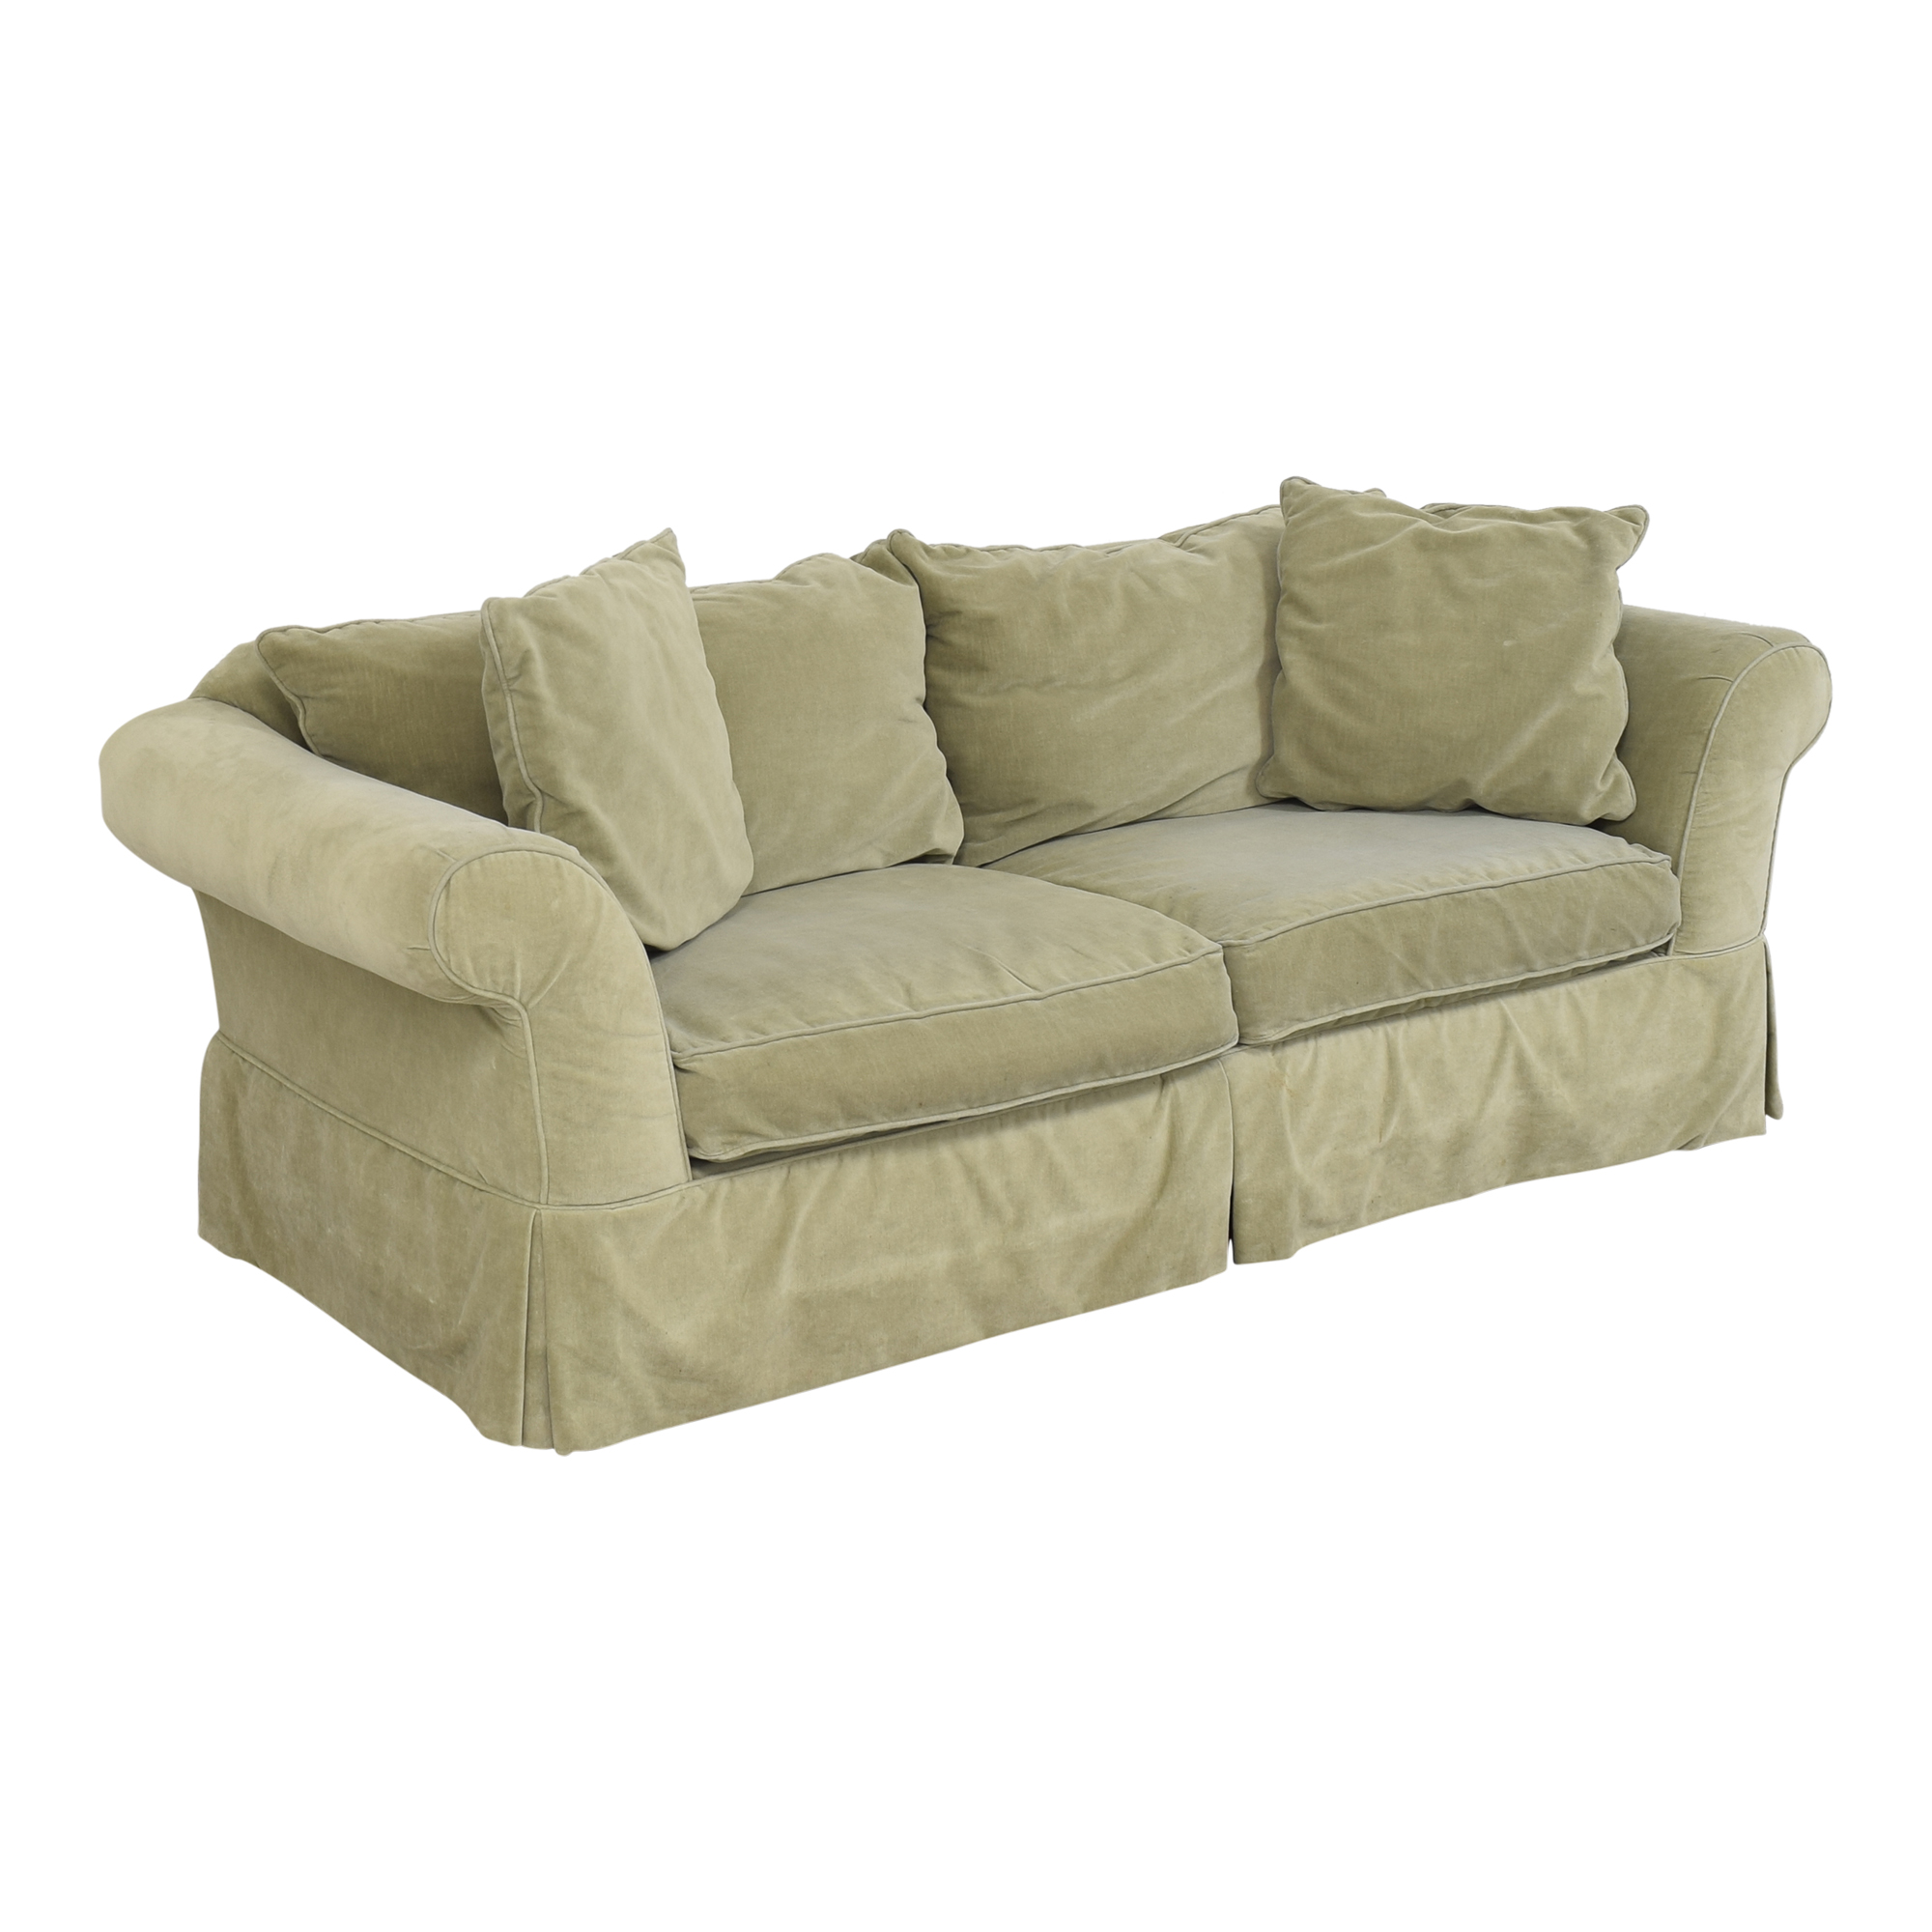 buy Southern of Conover Roll Arm Sofa Southern Furniture of Conover Sofas